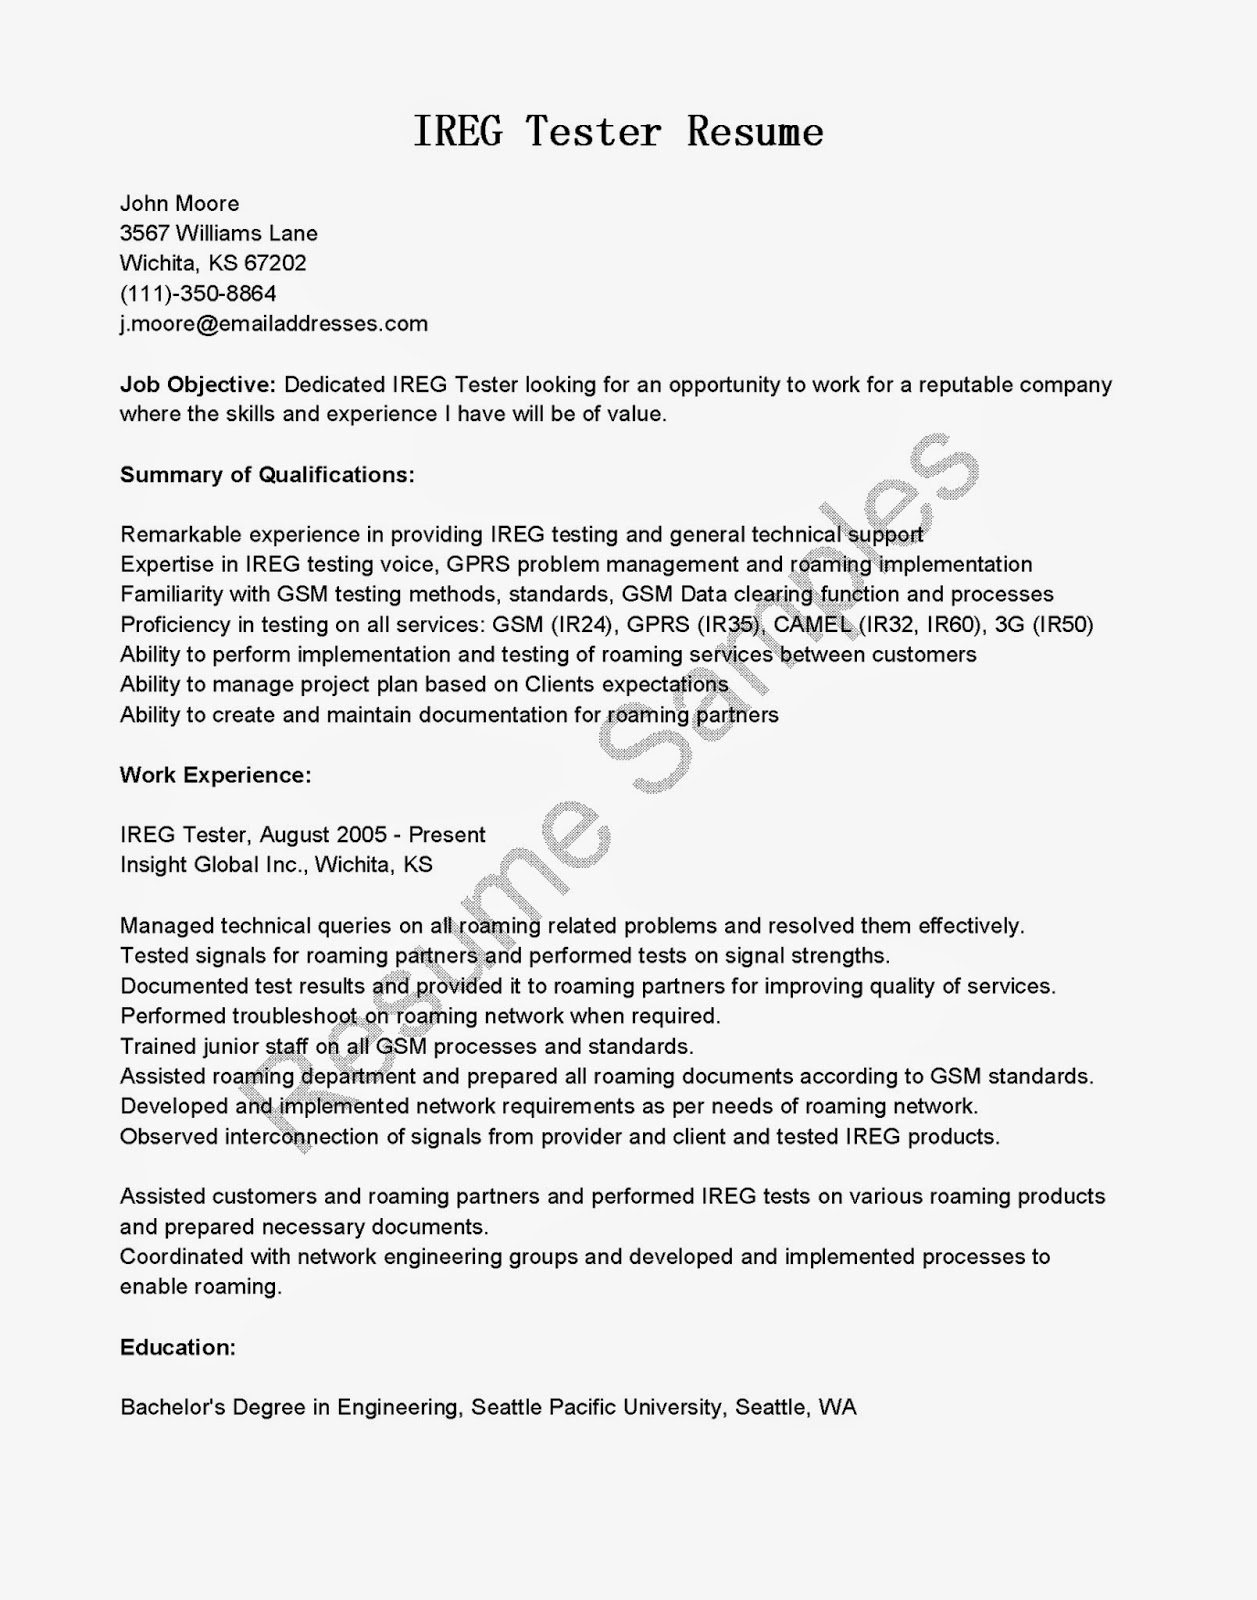 resume samples  ireg tester resume sample